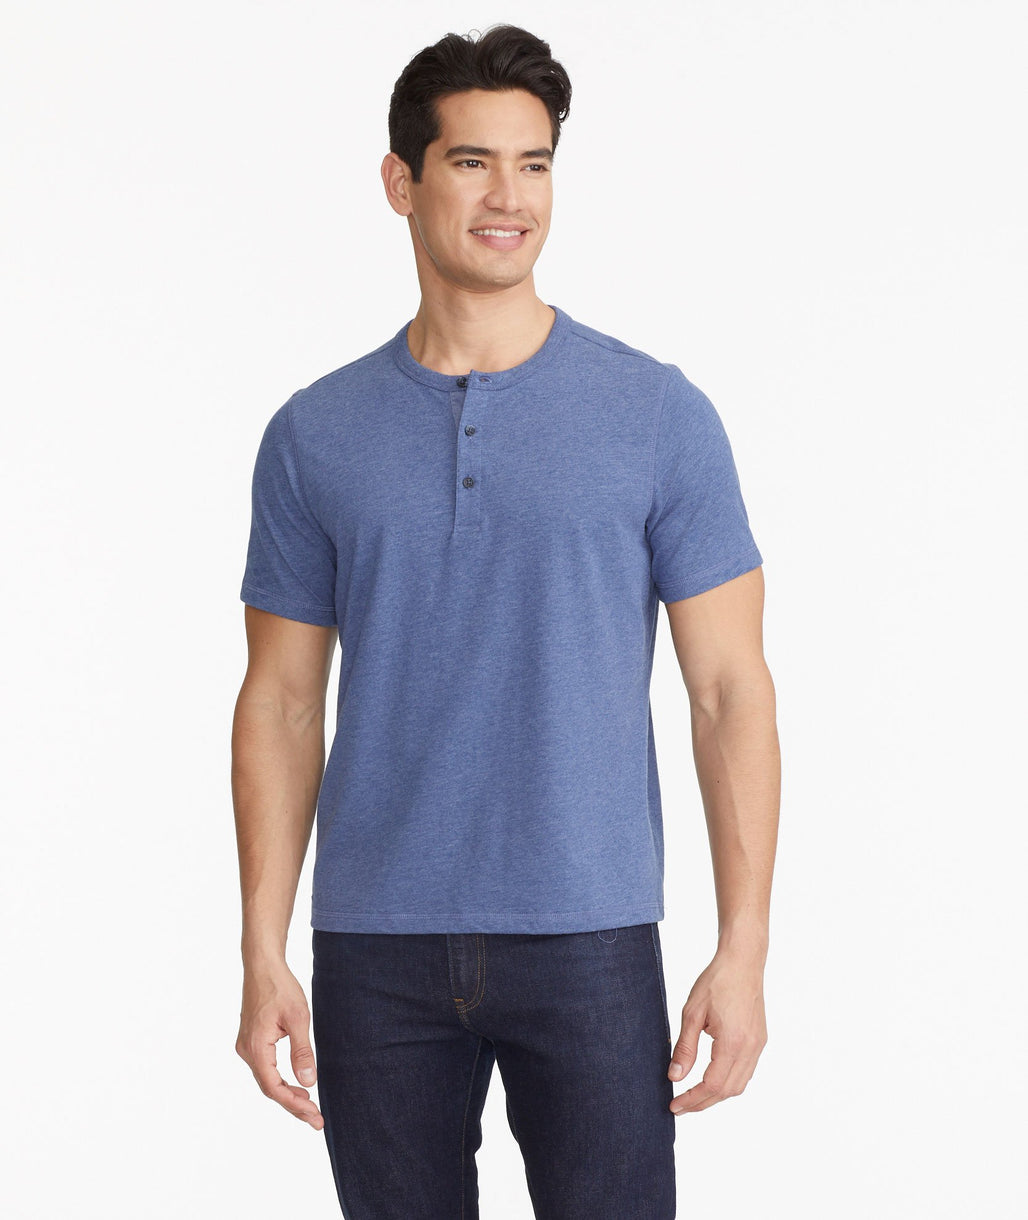 Model wearing a Blue The Ultrasoft Short-Sleeve Henley